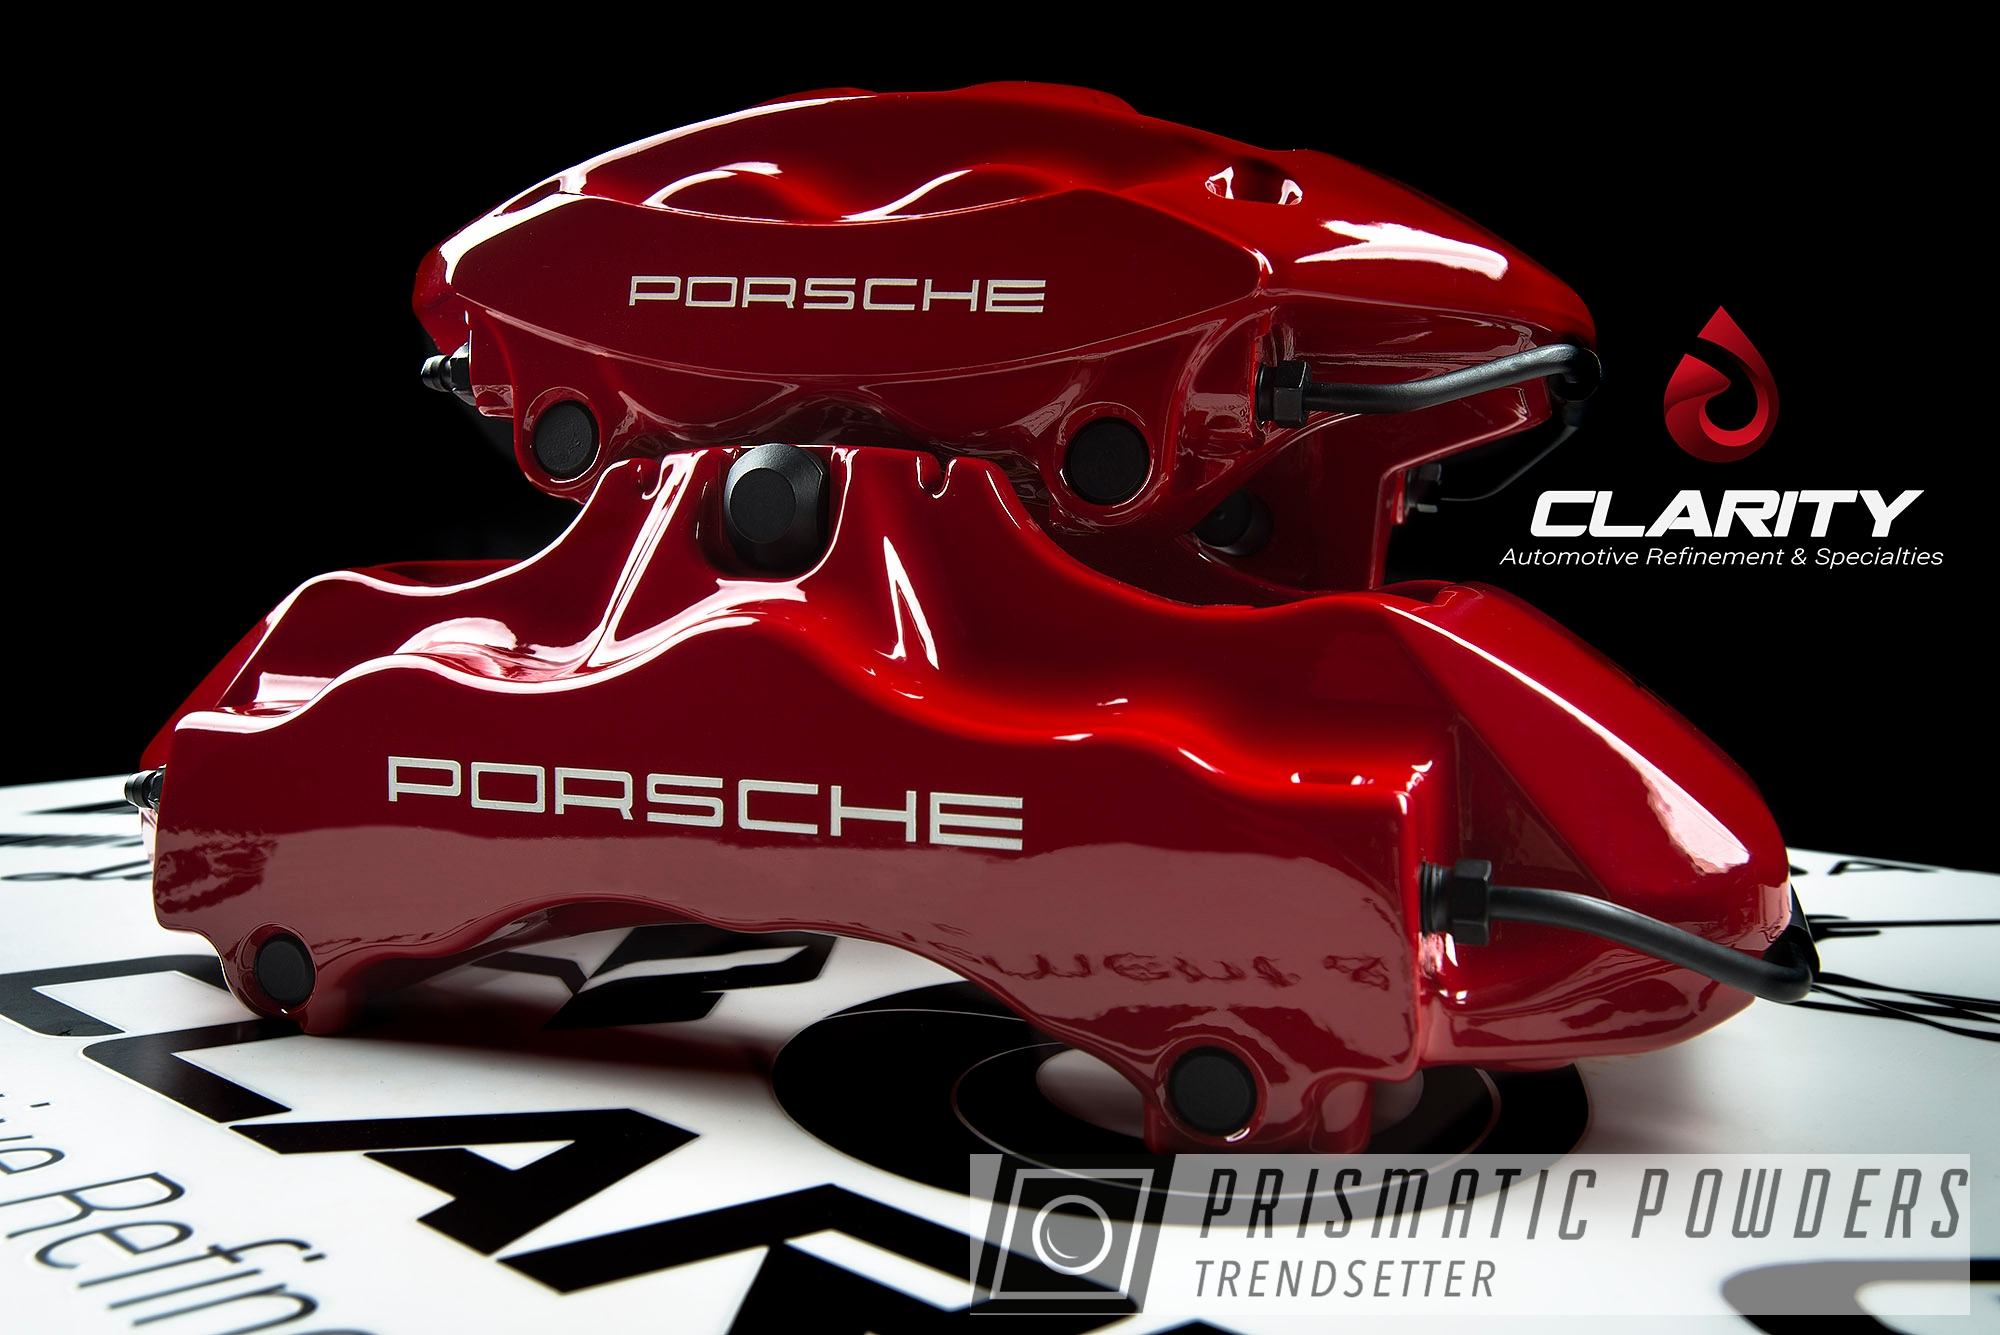 Powder Coating: Red Wheel PSS-2694,Automotive,Clear Vision PPS-2974,911T,Porsche,Custom Automotive Brake Calipers,Custom Brakes,brakecalipers